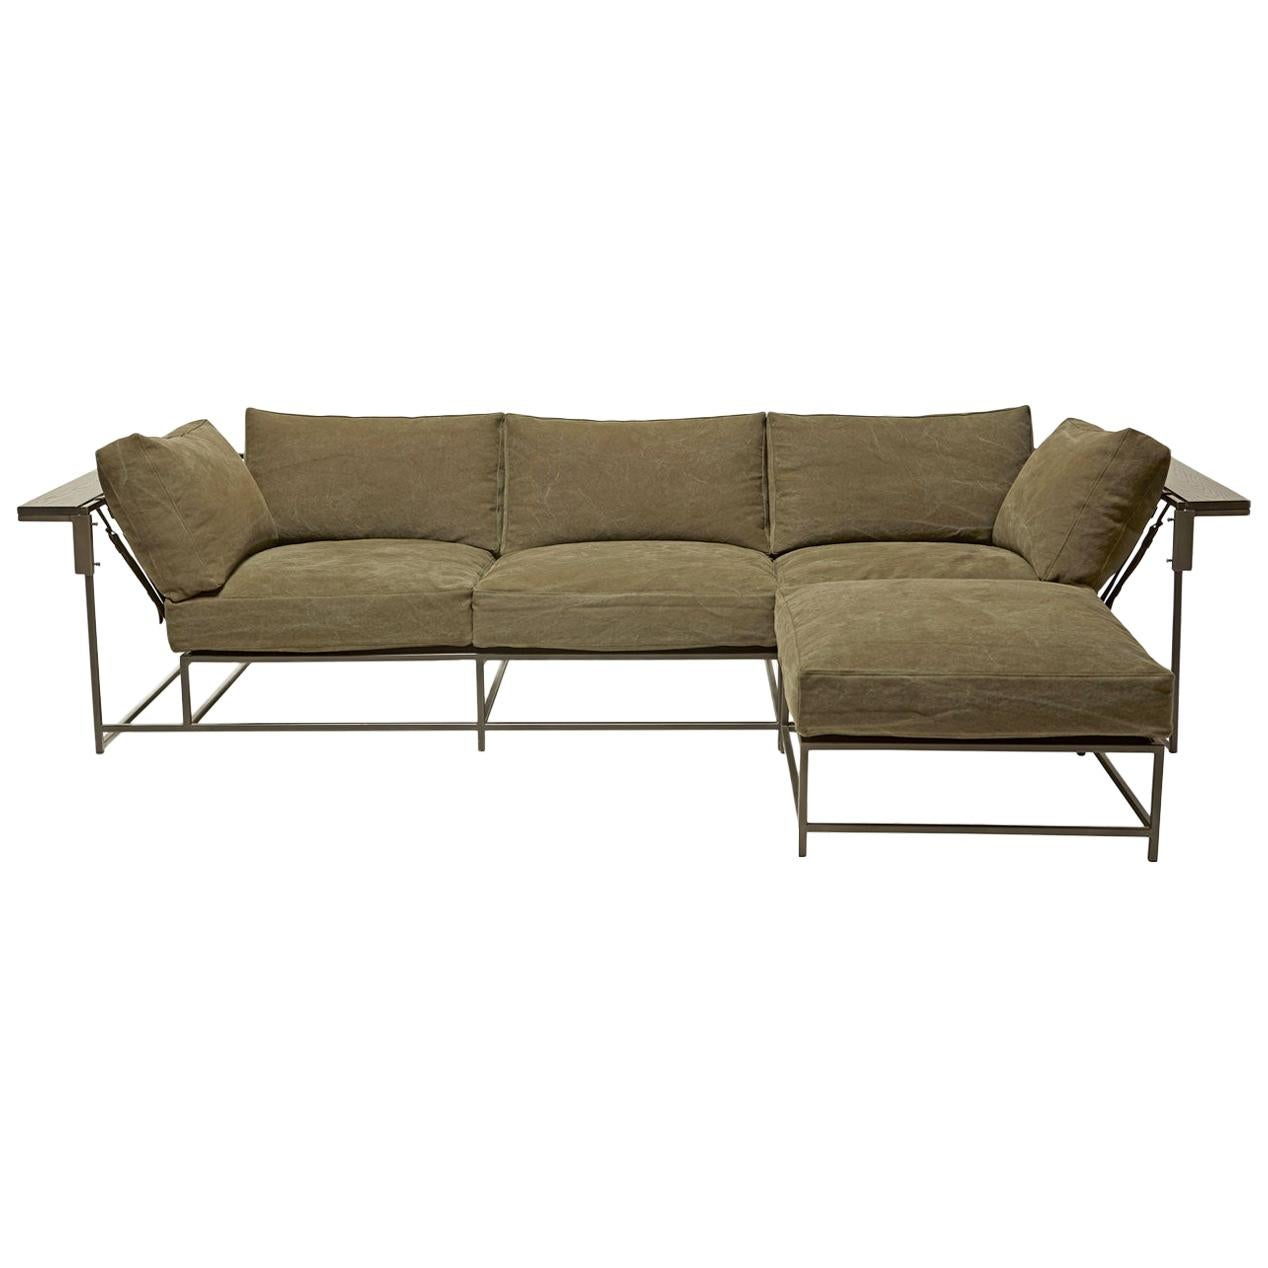 Heavy Olive Canvas Sofa and Ottoman Set